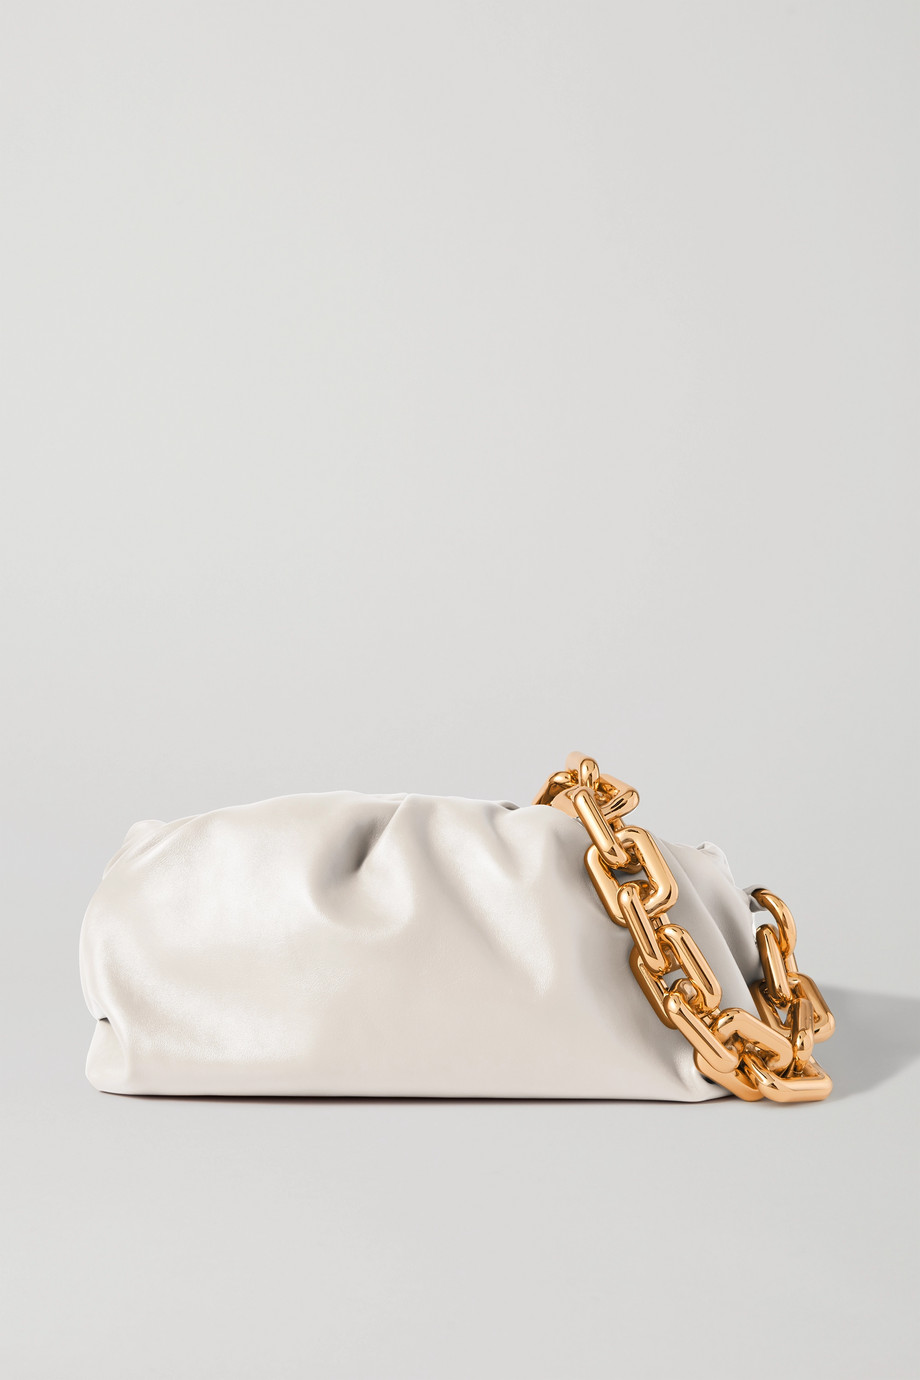 Bottega Veneta The Chain Pouch Clutch aus Leder mit Raffungen